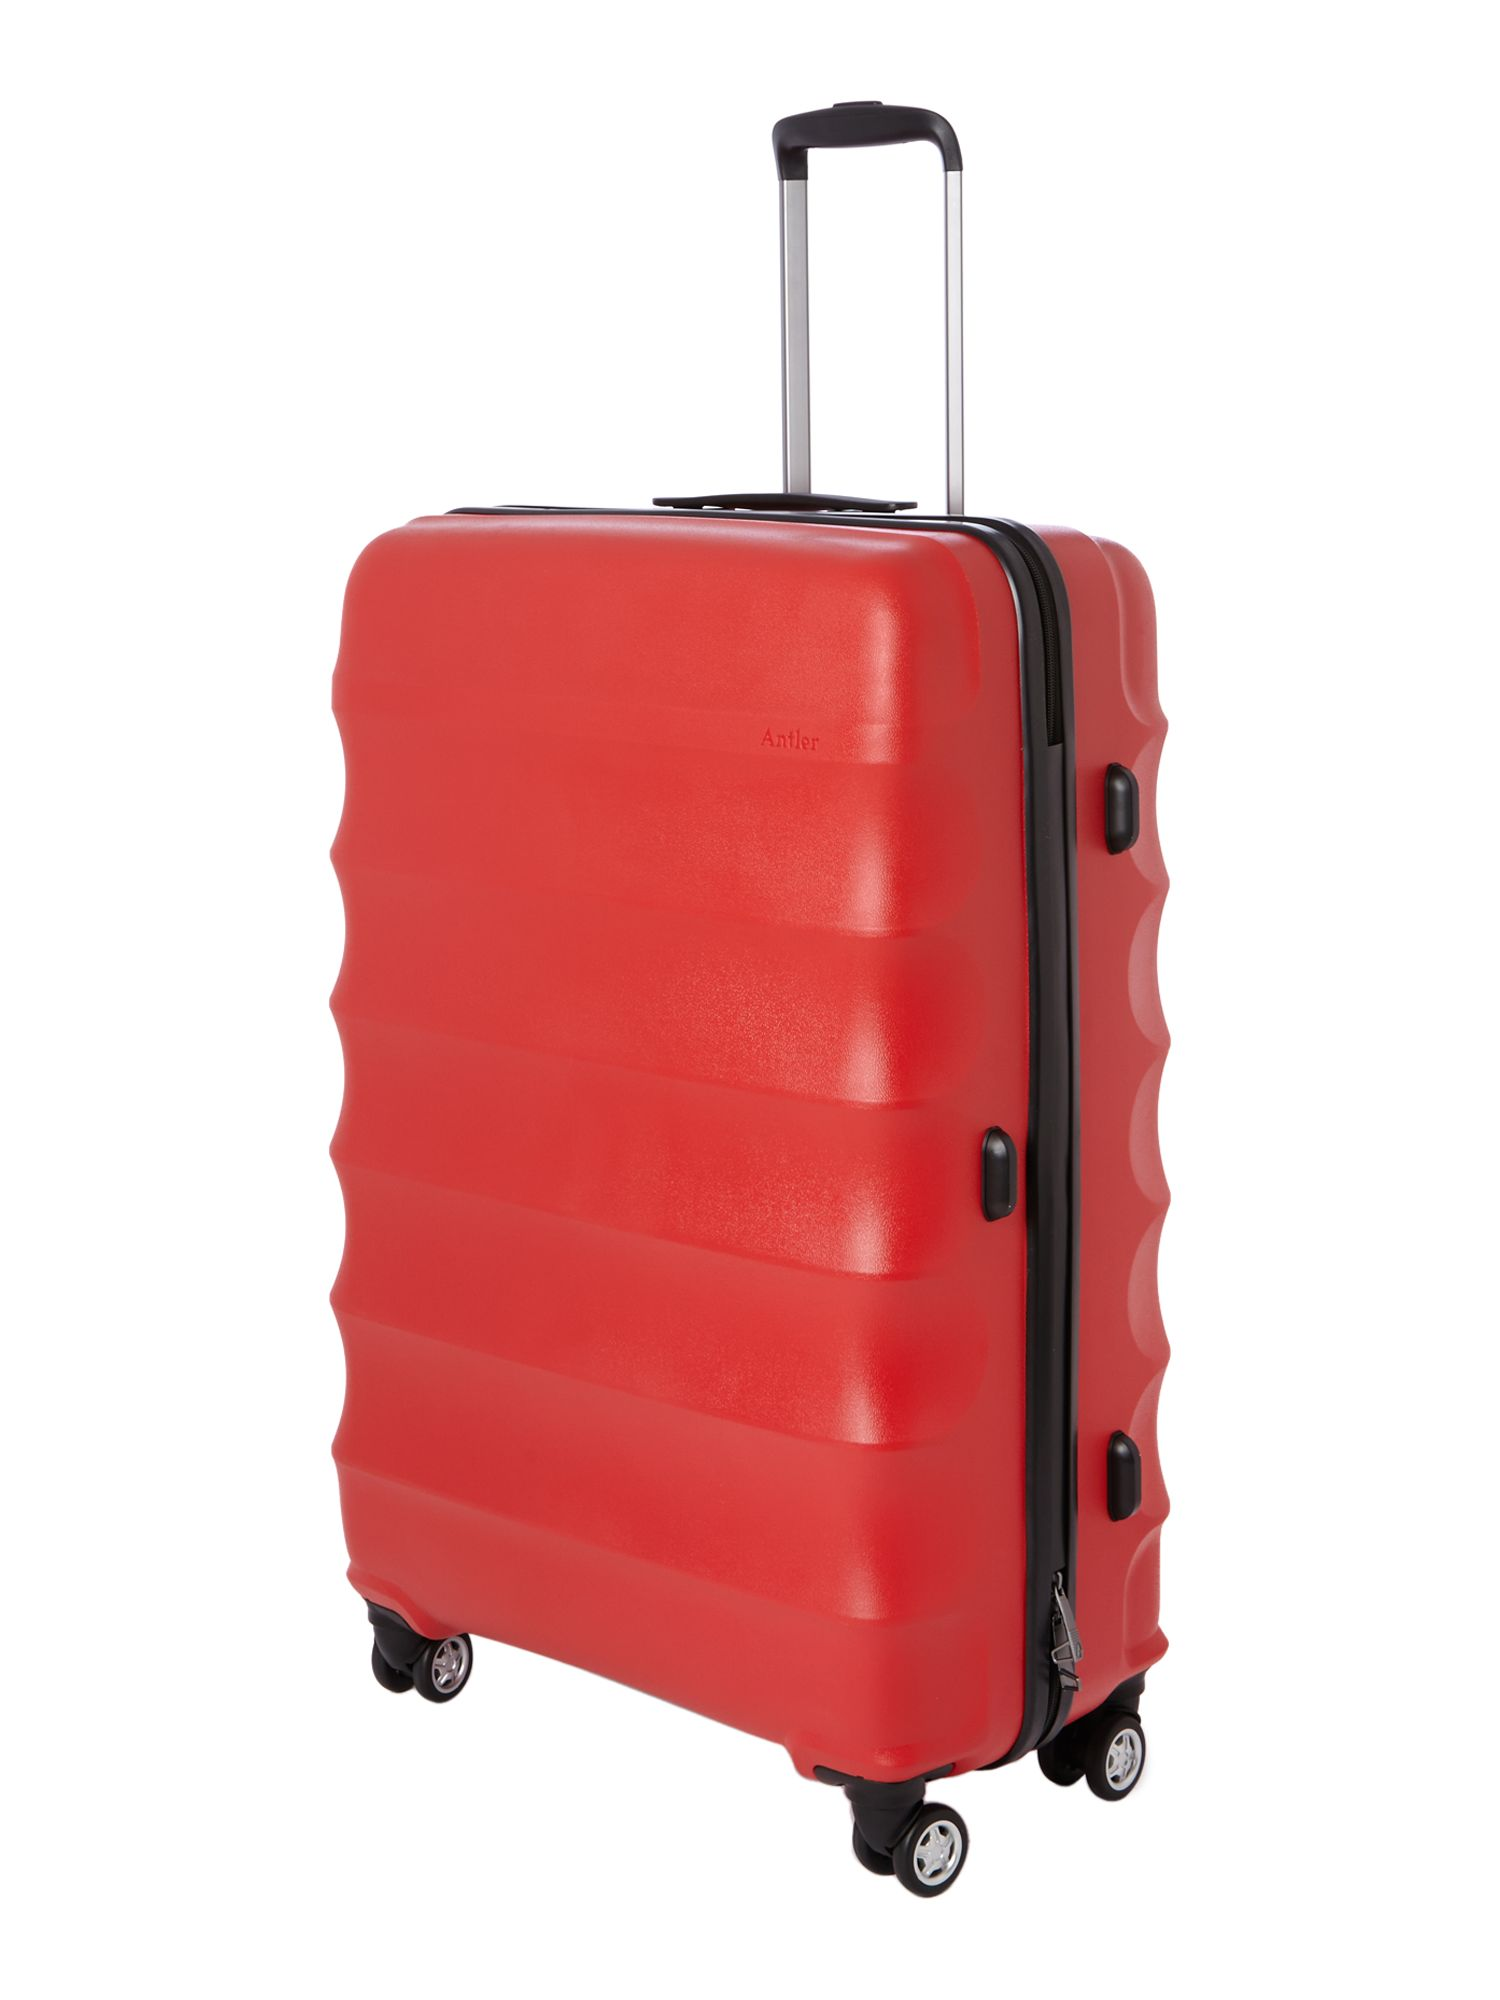 Juno 4 wheel red hard large rollercase